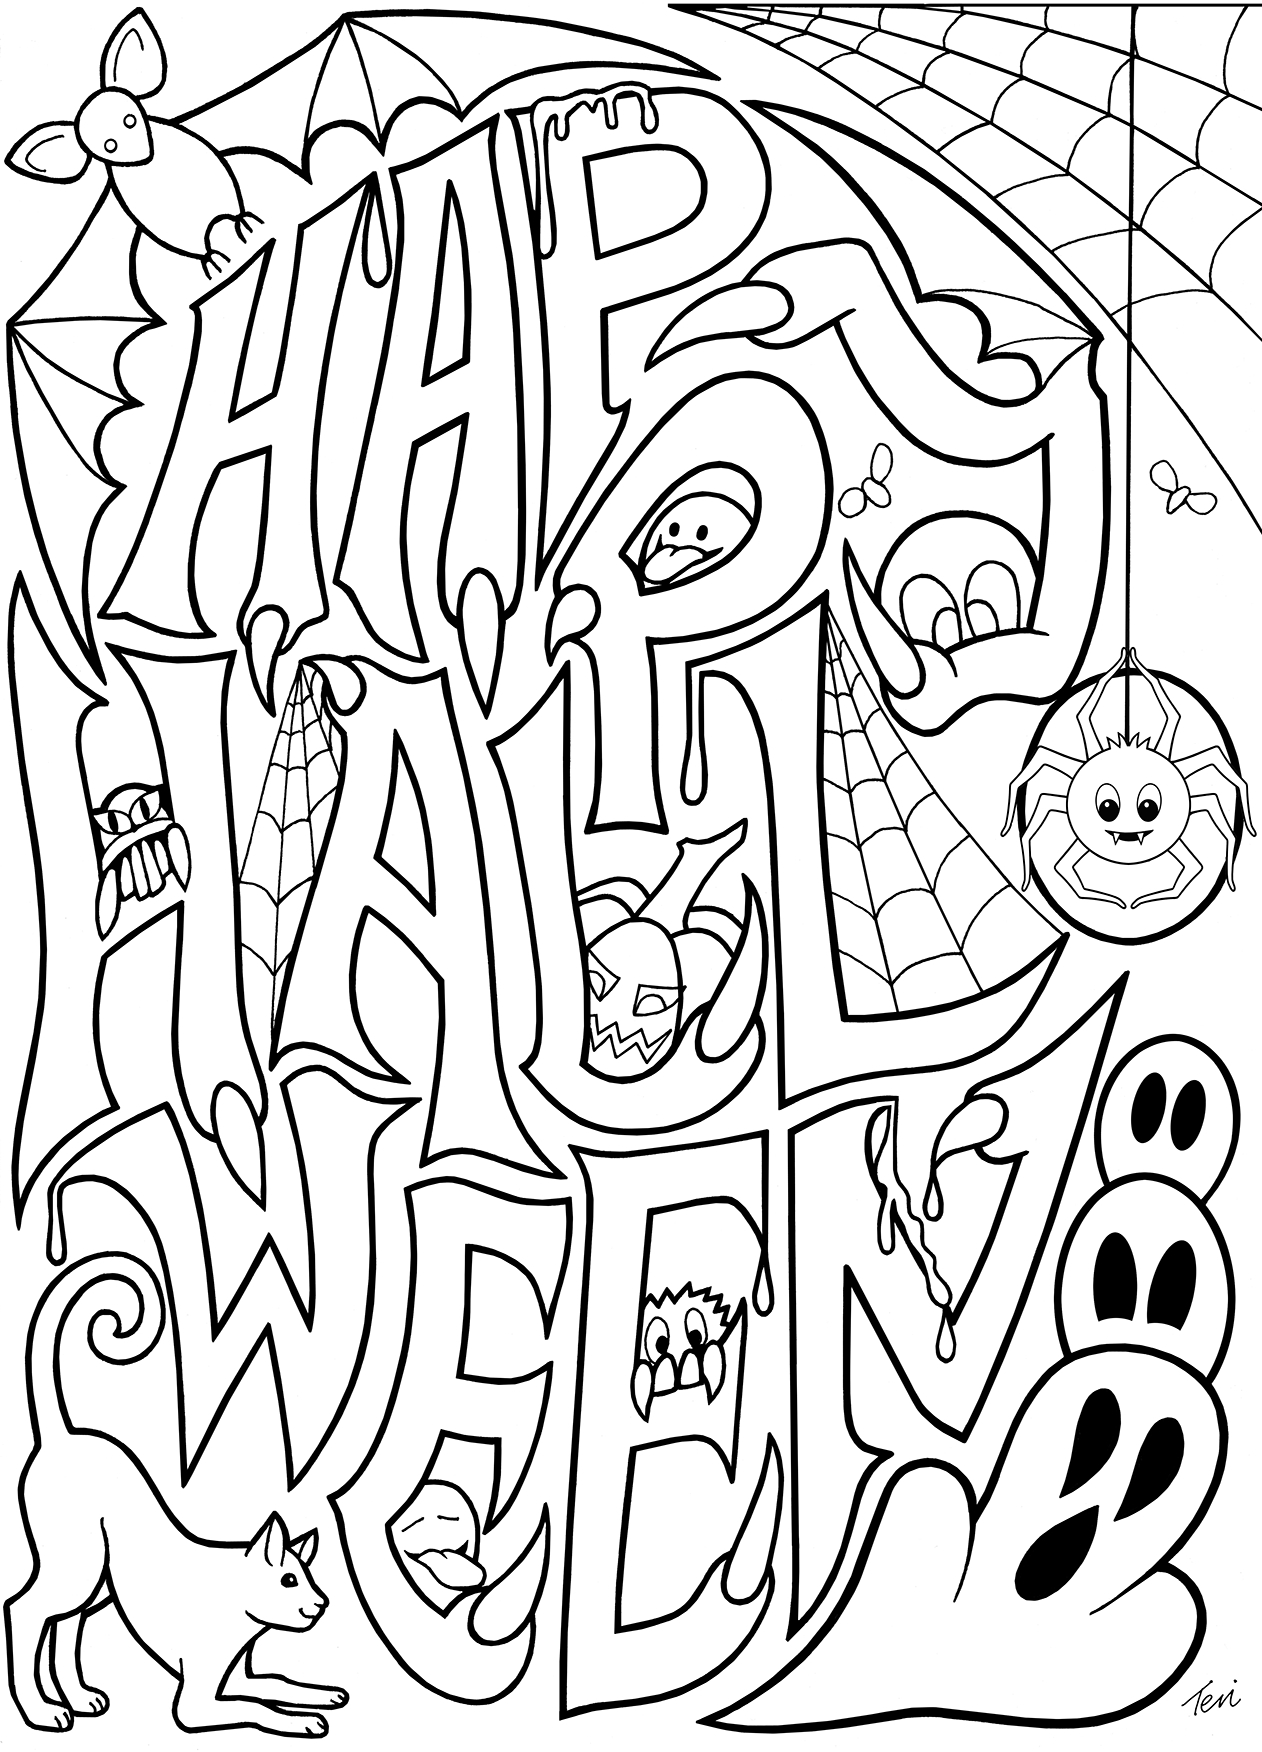 coloring sheets for halloween free printables halloween coloring pages at getcolorings coloring for sheets halloween